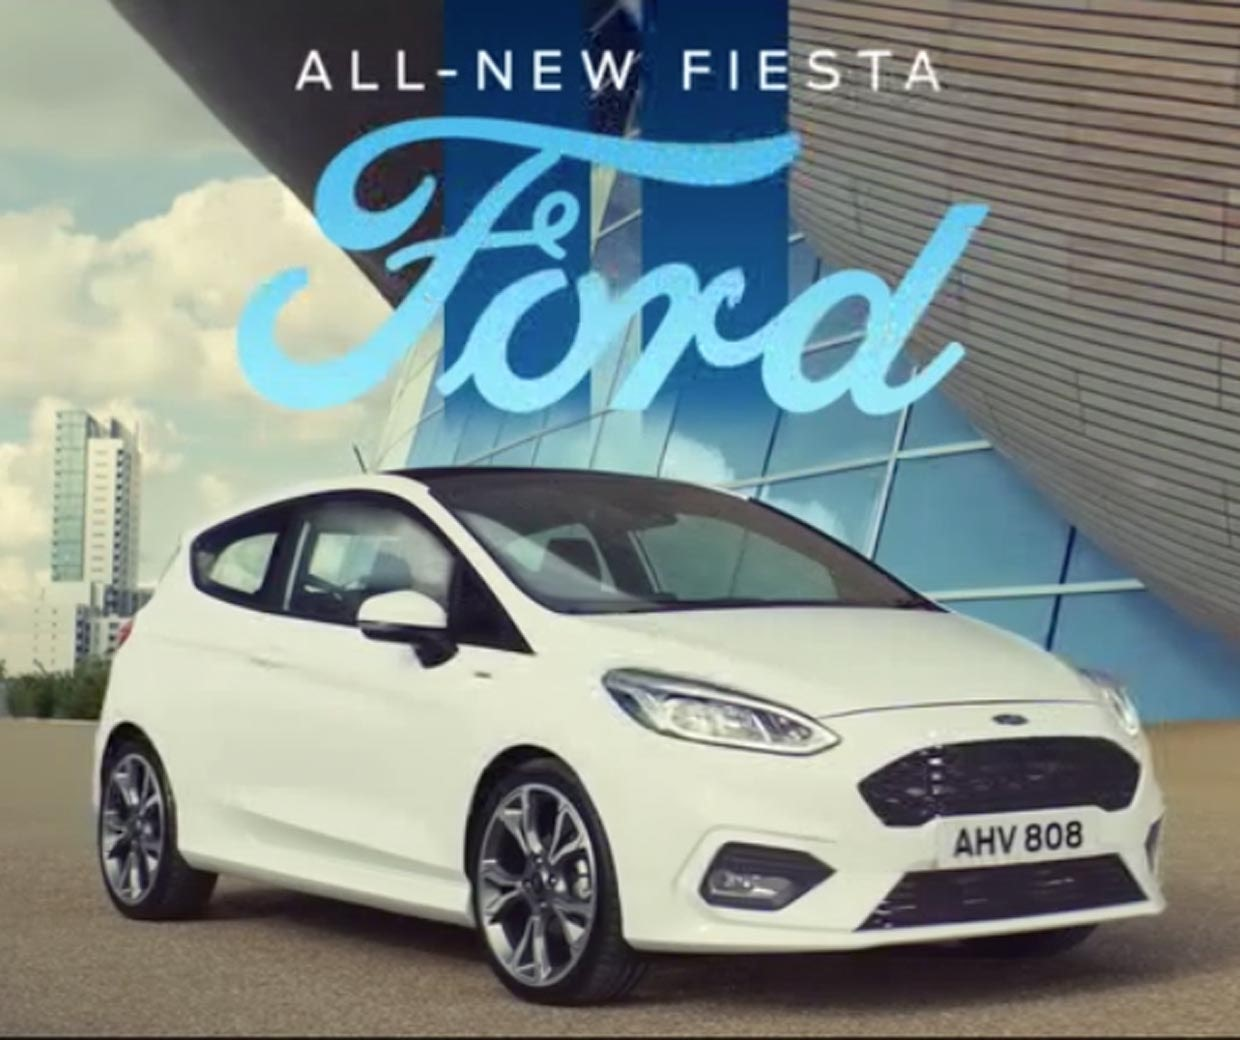 Ford Ditches European Ads To Become More 'British-centric'